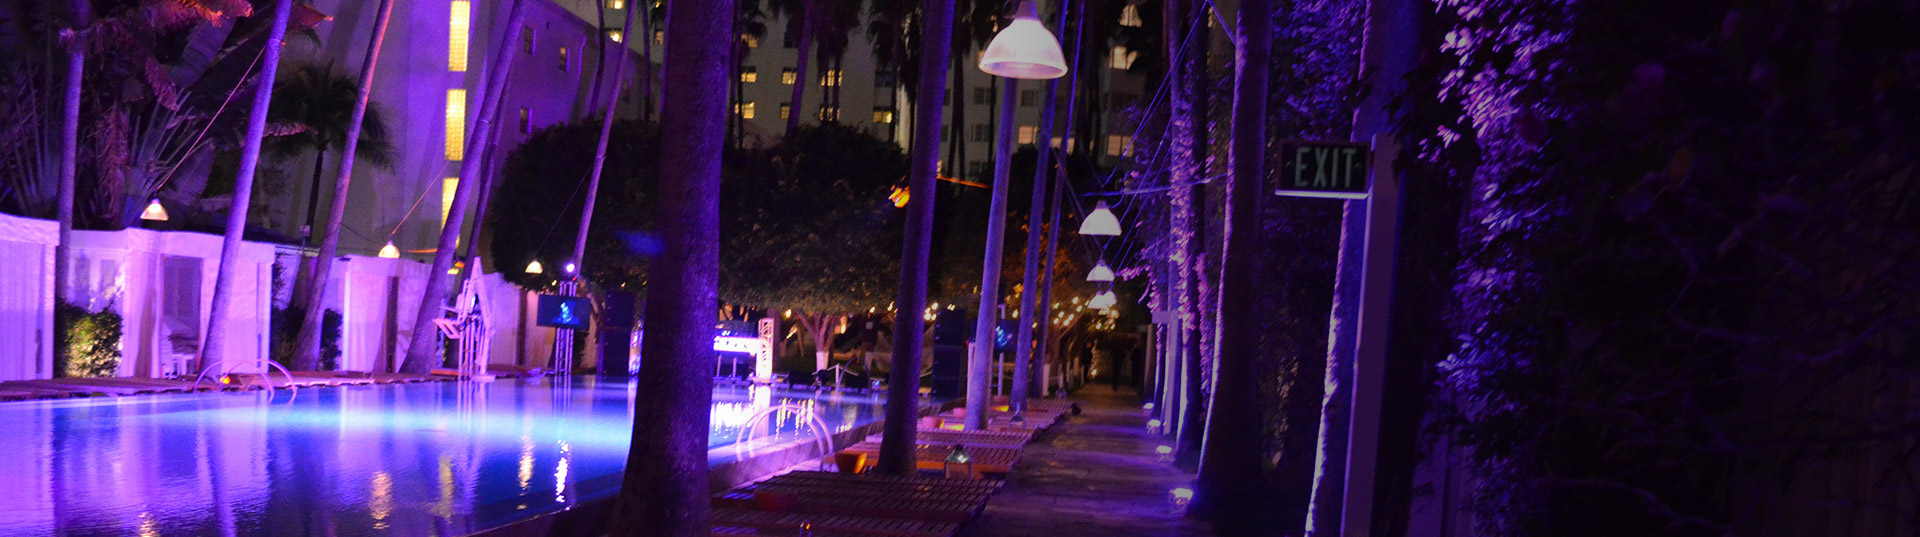 Outdoor Lighting Services for Miami Event & South Florida Event Lighting | MMEink South azcodes.com